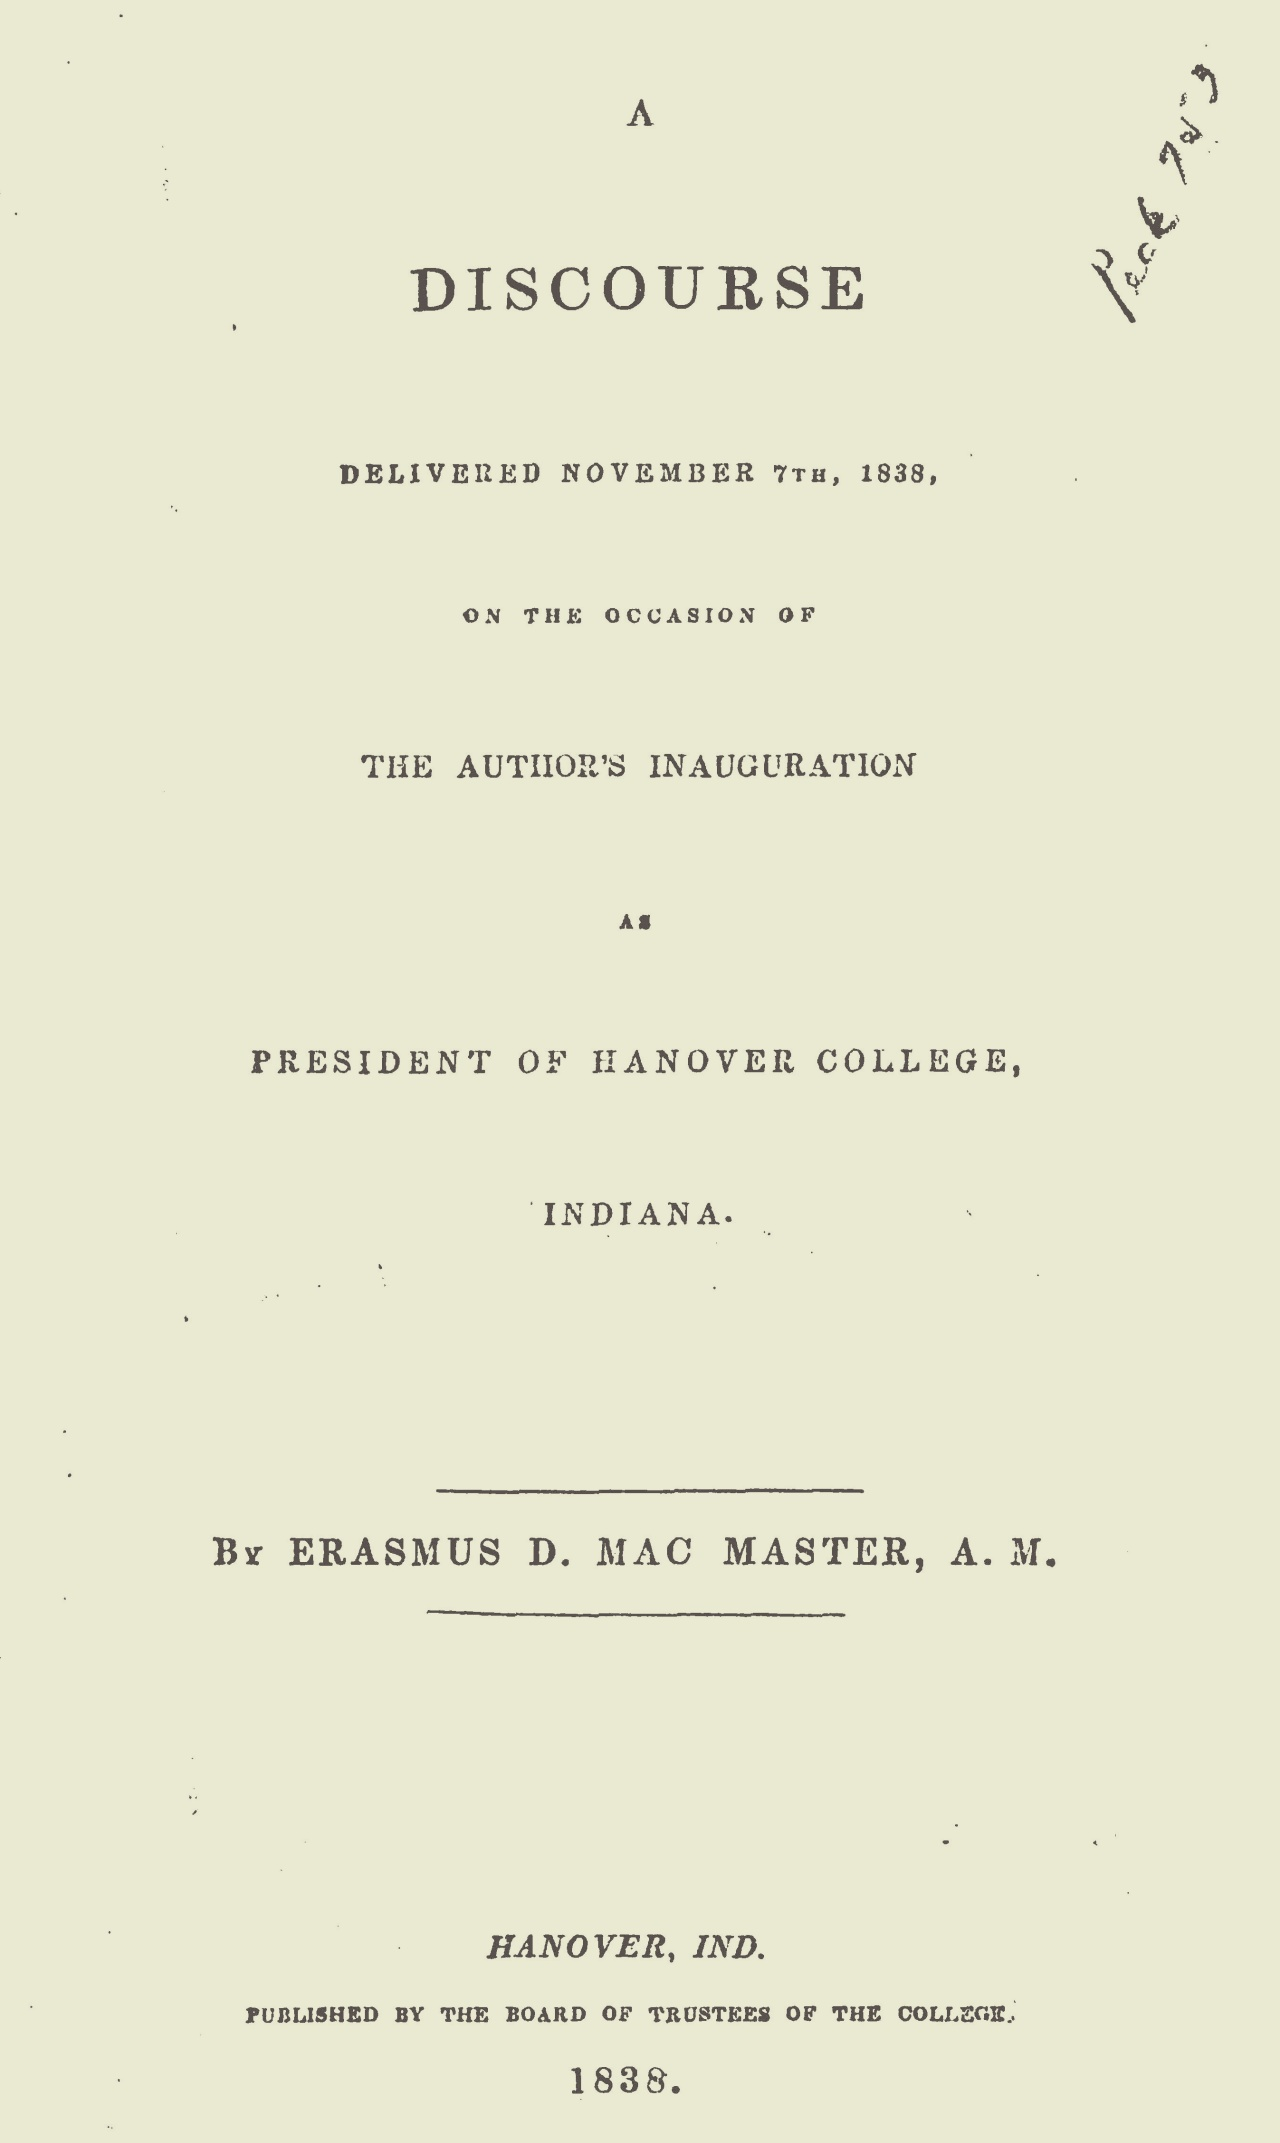 McMaster, Erasmus Darwin, An Inaugural Discourse Delivered November 7th, 1838 Title Page.jpg